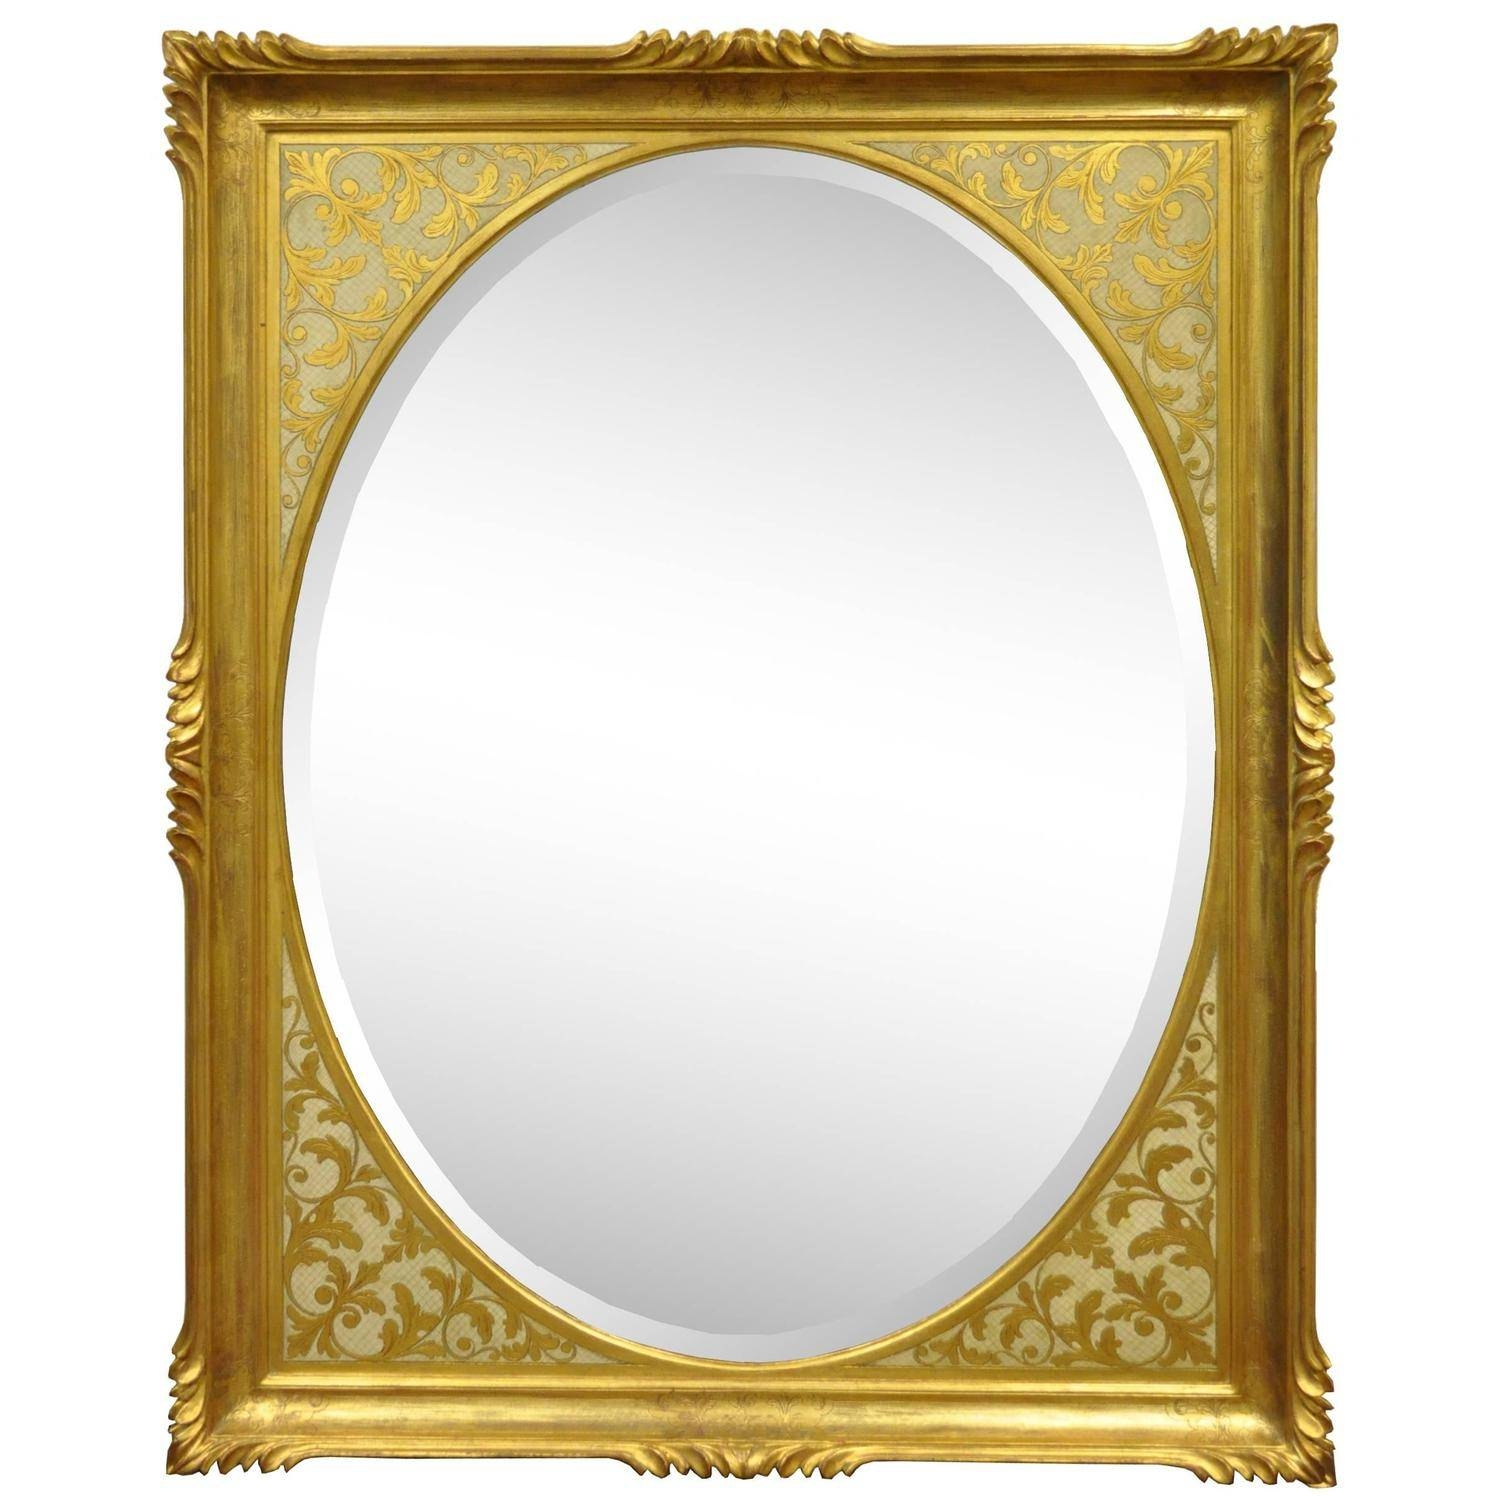 Vintage 1960S Italian Florentine Gold Gilt Carved Wood Wall Mirror regarding Gold Gilt Mirrors (Image 15 of 15)